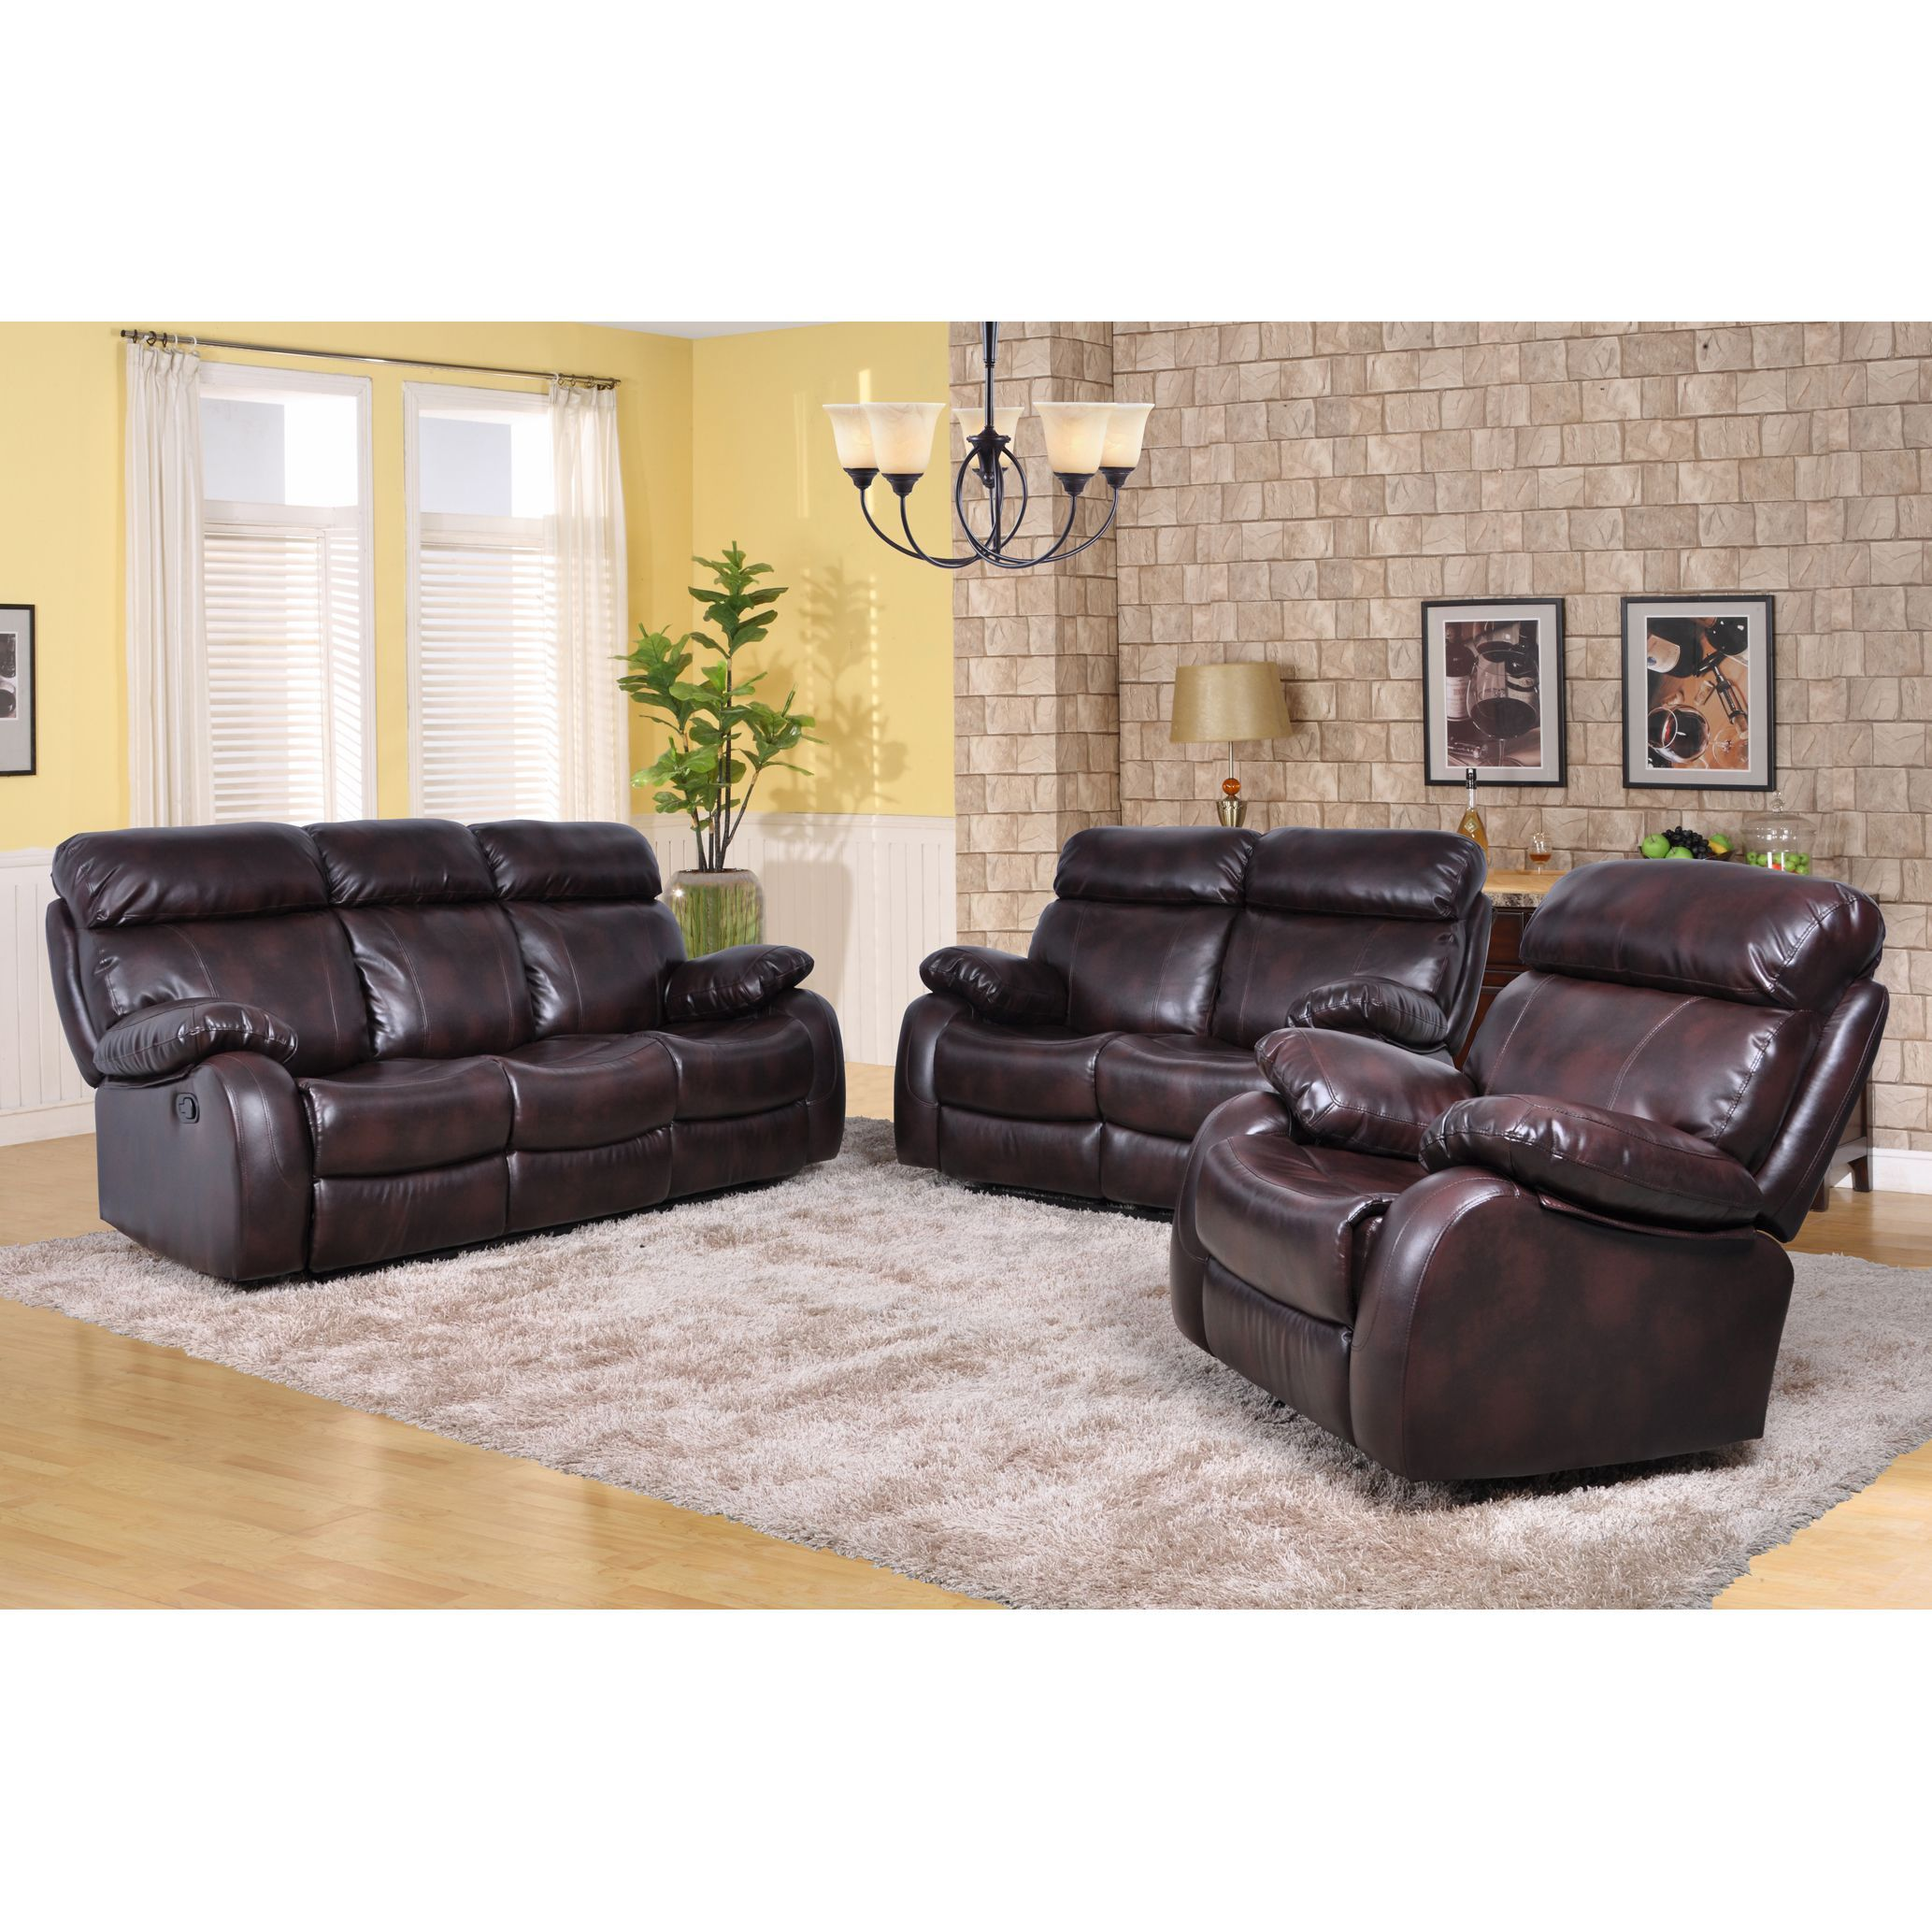 Barcelona black leather reclining piece sofa set with rocking